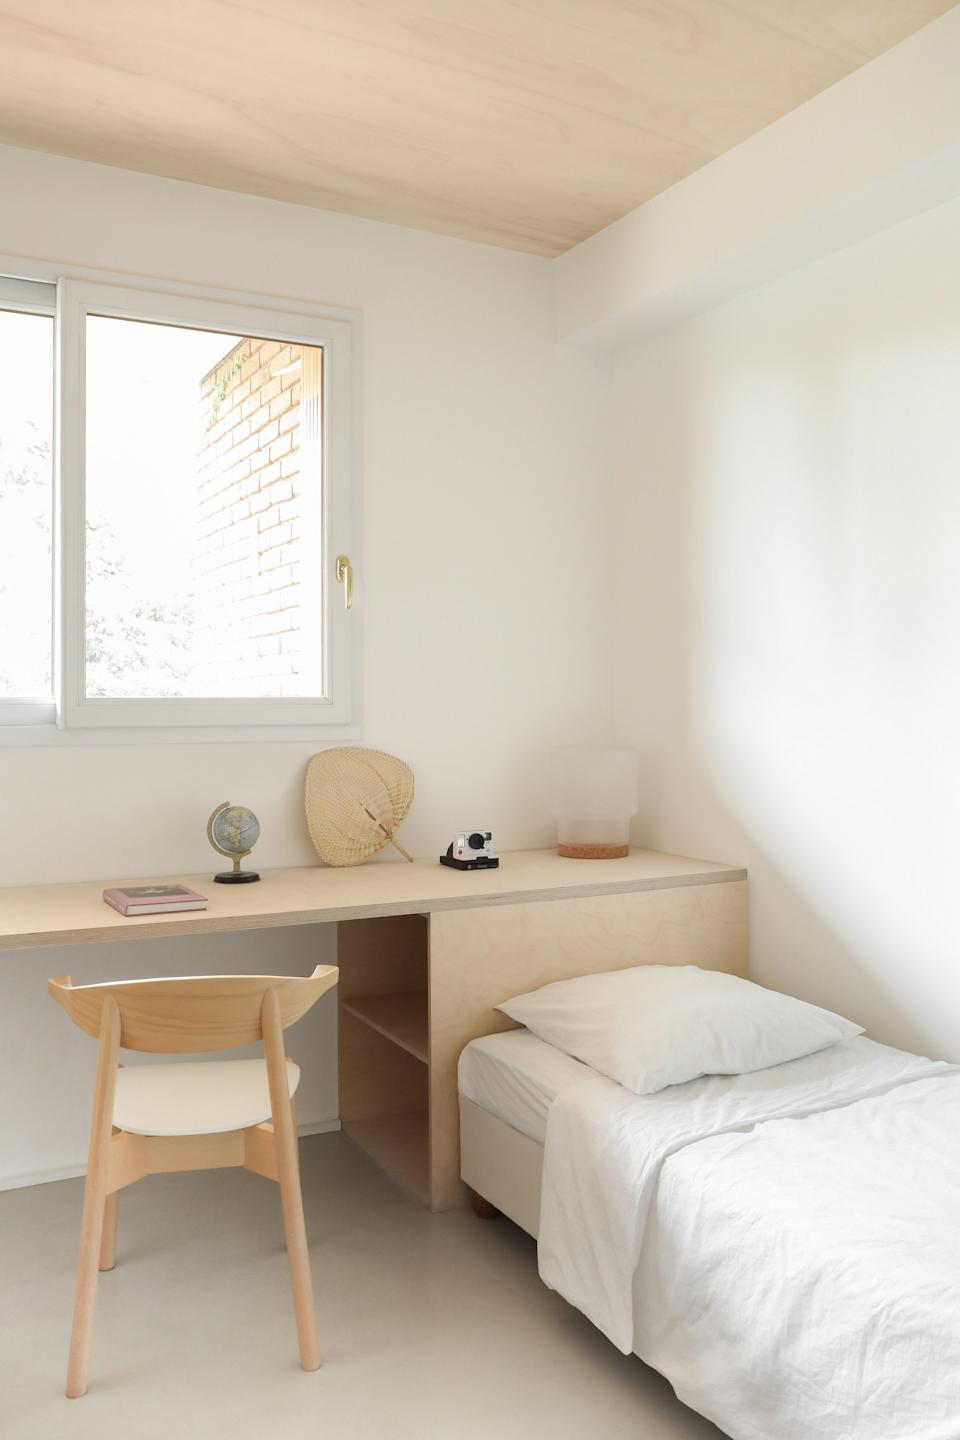 """<div class=""""caption"""">With its made-to-measure desk and bed frame, the kid's room was inspired by nature and the work of <a href=""""https://www.architecturaldigest.com/story/a-classic-alvar-aalto-design-for-wellness-that-still-inspires?mbid=synd_yahoo_rss"""" rel=""""nofollow noopener"""" target=""""_blank"""" data-ylk=""""slk:Alvar Aalto"""" class=""""link rapid-noclick-resp"""">Alvar Aalto</a>.</div>"""